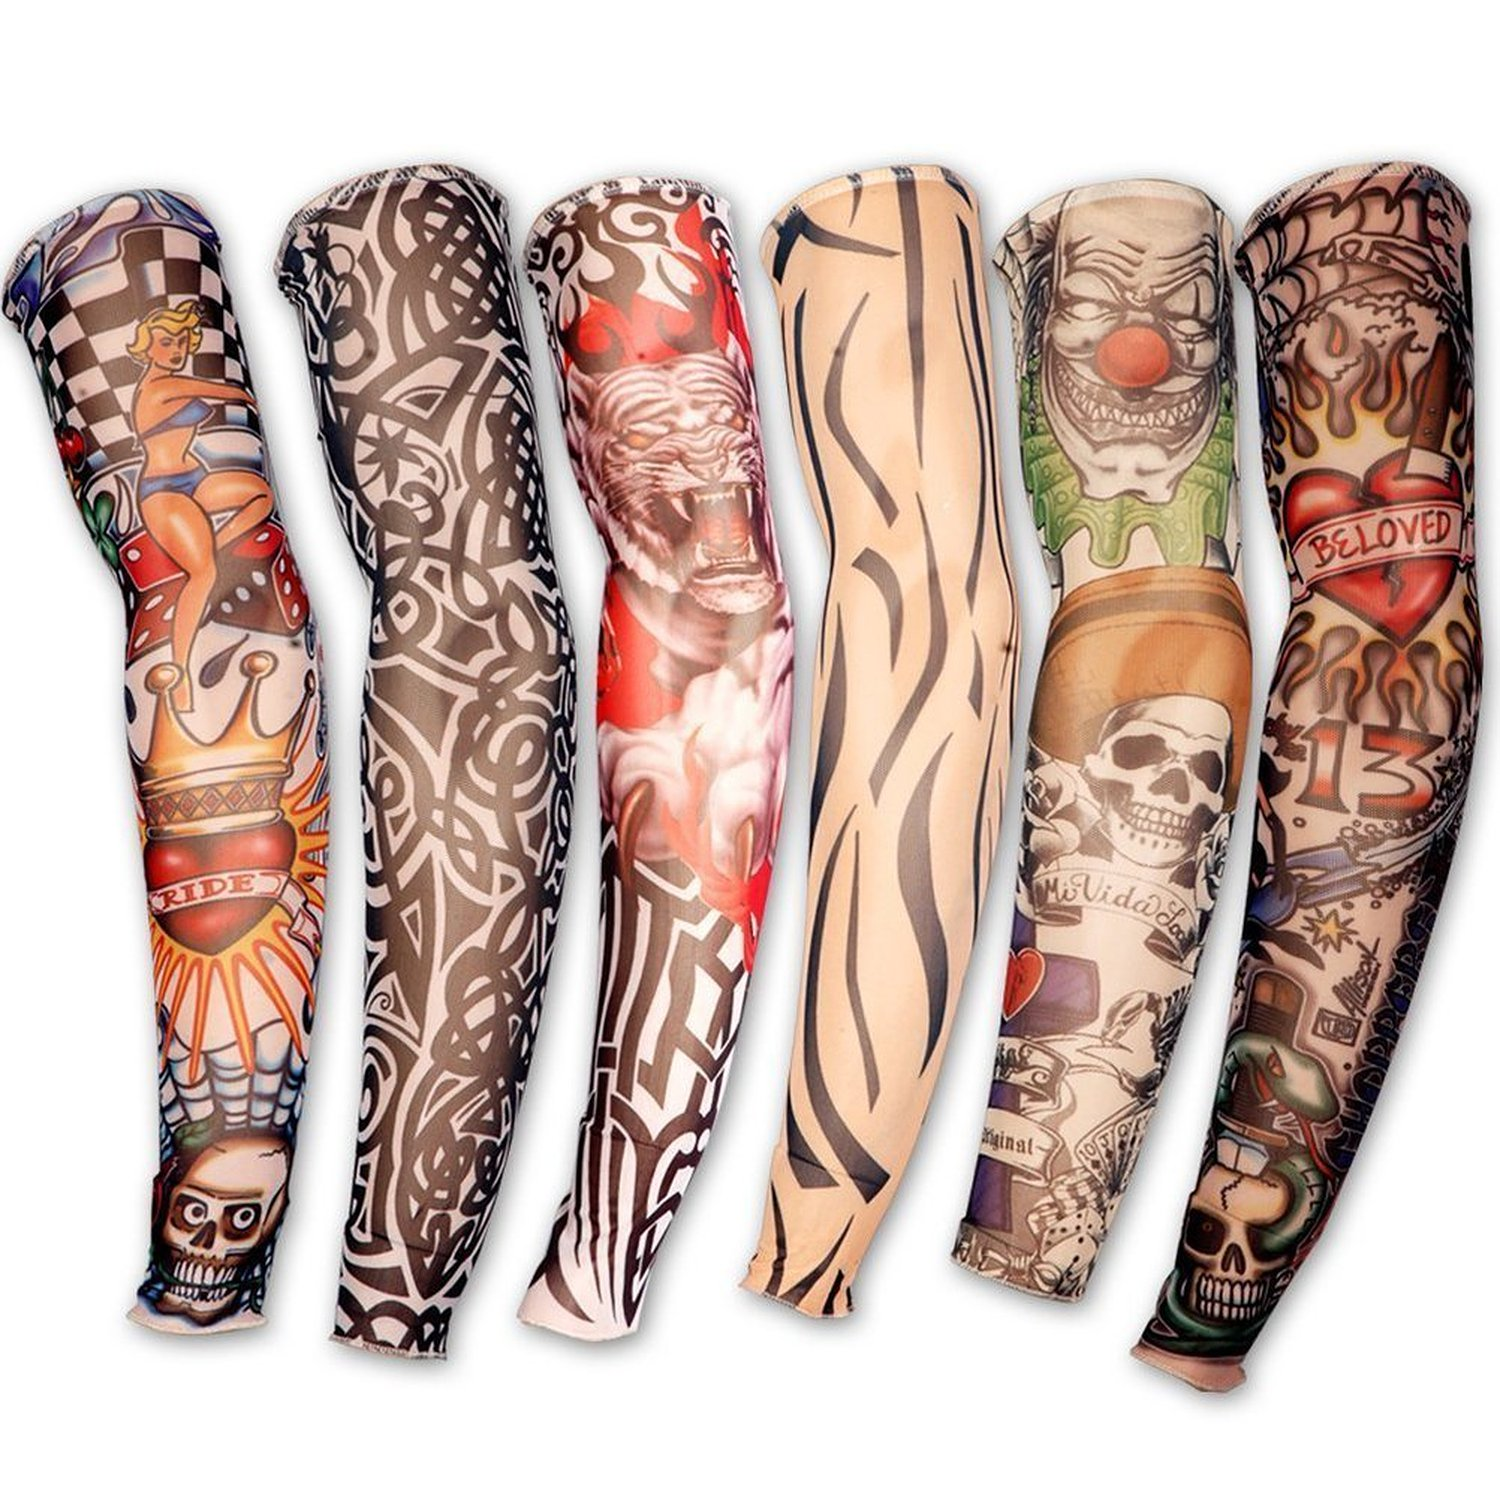 5311f1e16 Get Quotations · Yonger 6pcs Set Yonger Body Art Arm Stockings Slip  Accessories Fake Temporary Tattoo Sleeves, Tiger